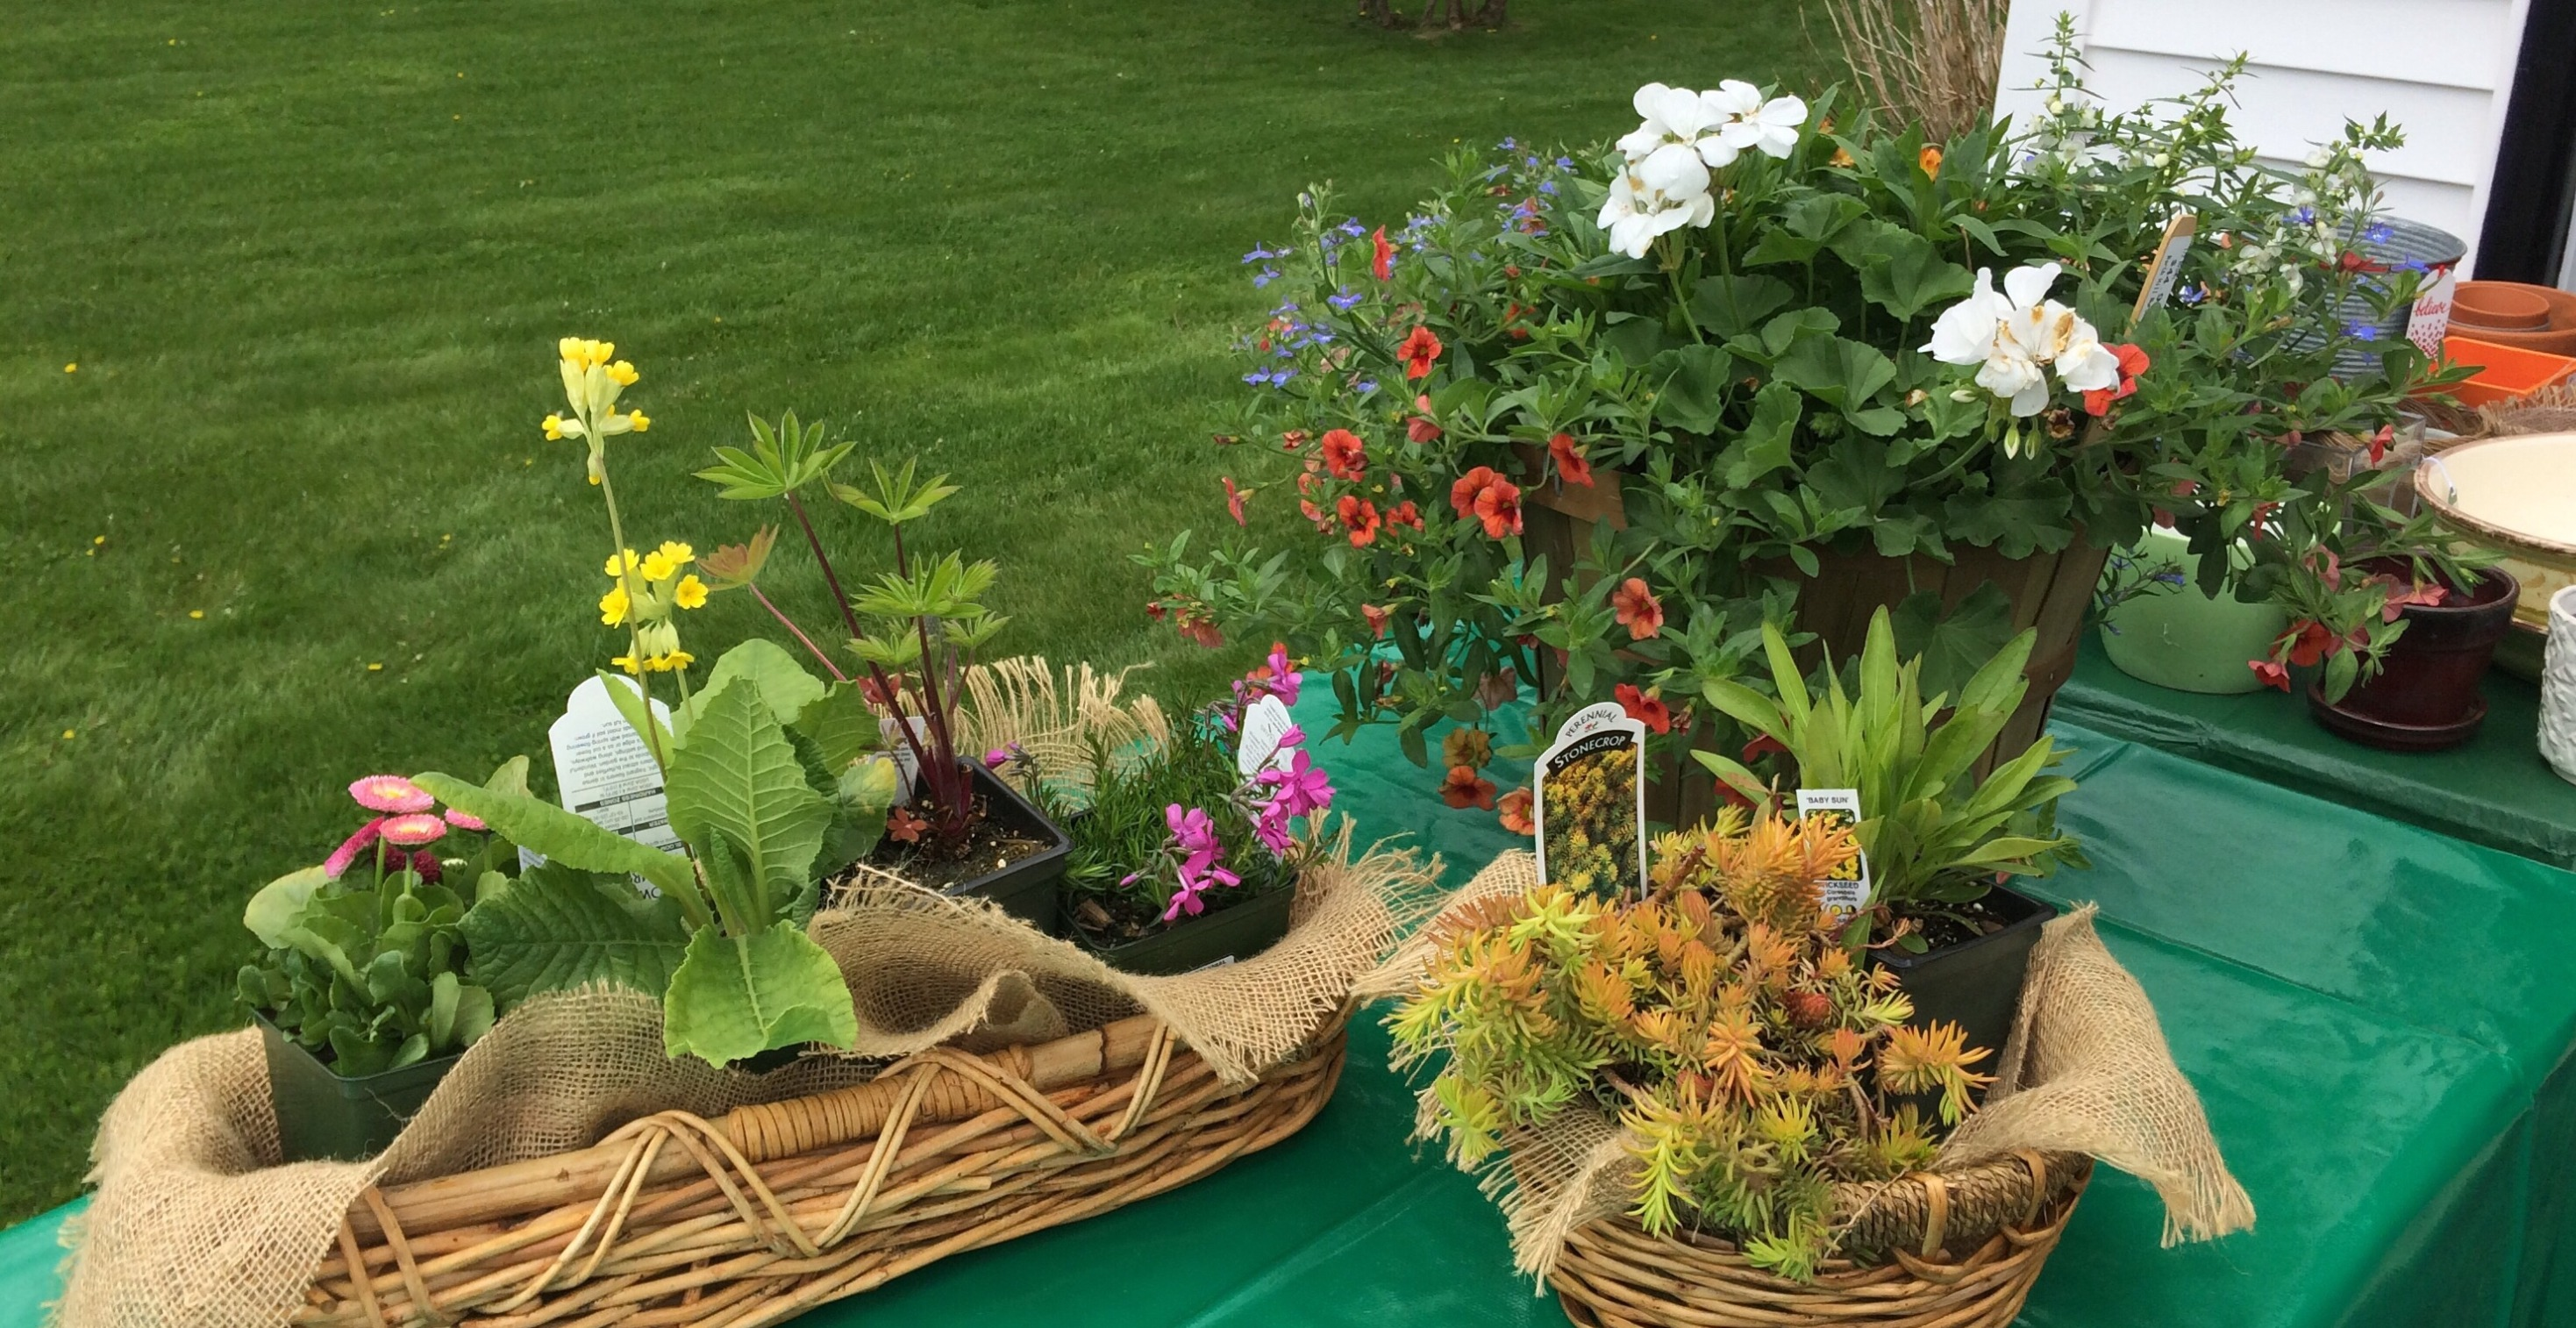 Auction Items at Plant Sale